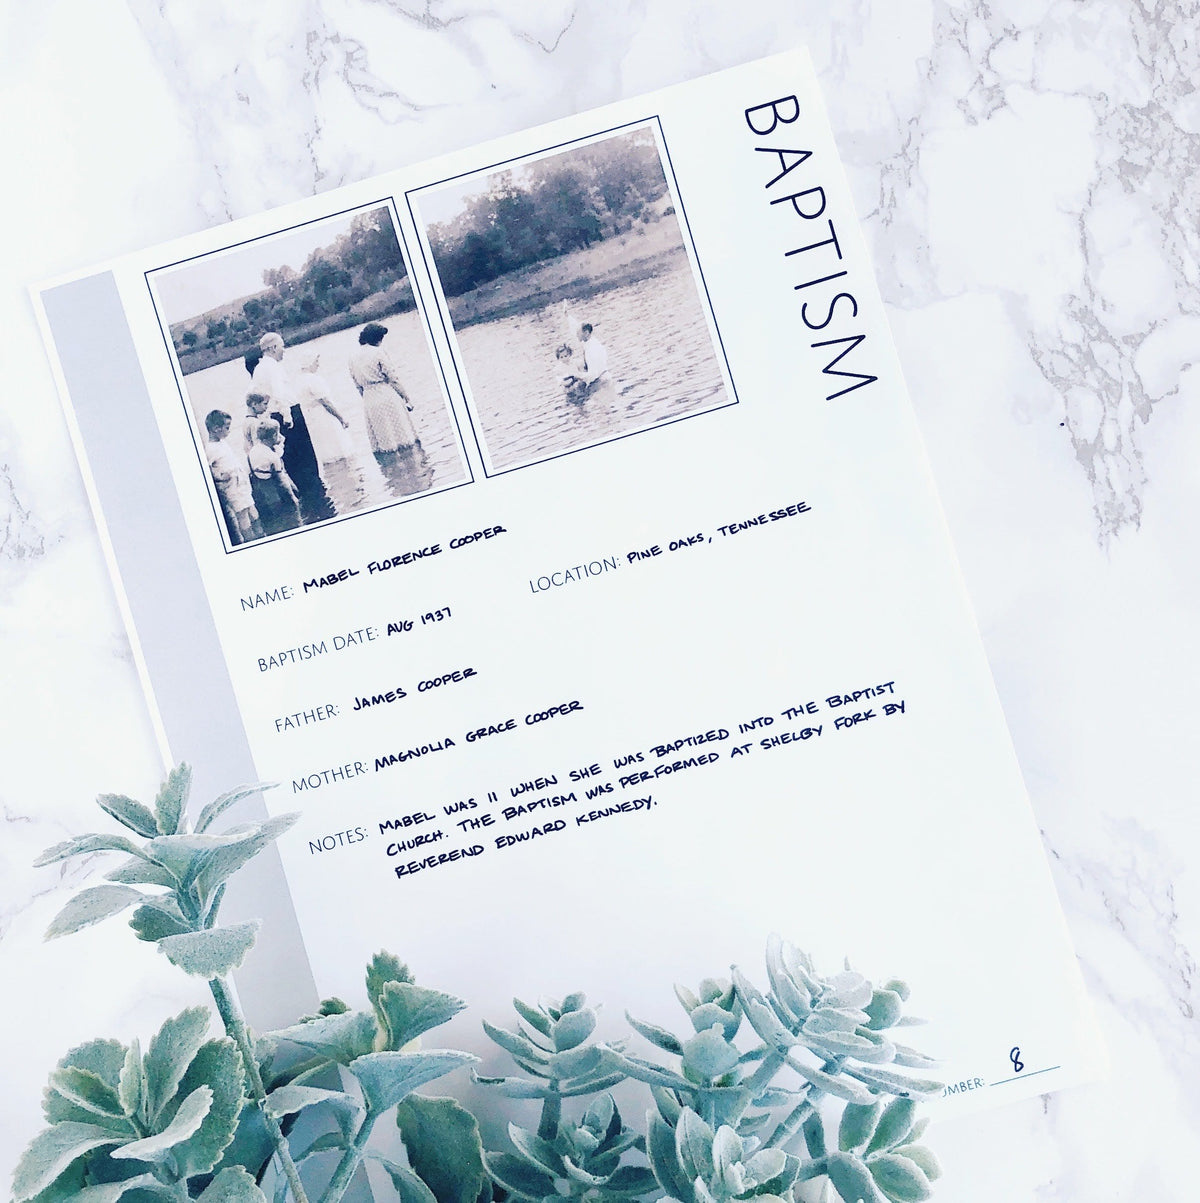 Baptism: Printable Ancestry Form for Genealogy (Digital Download)